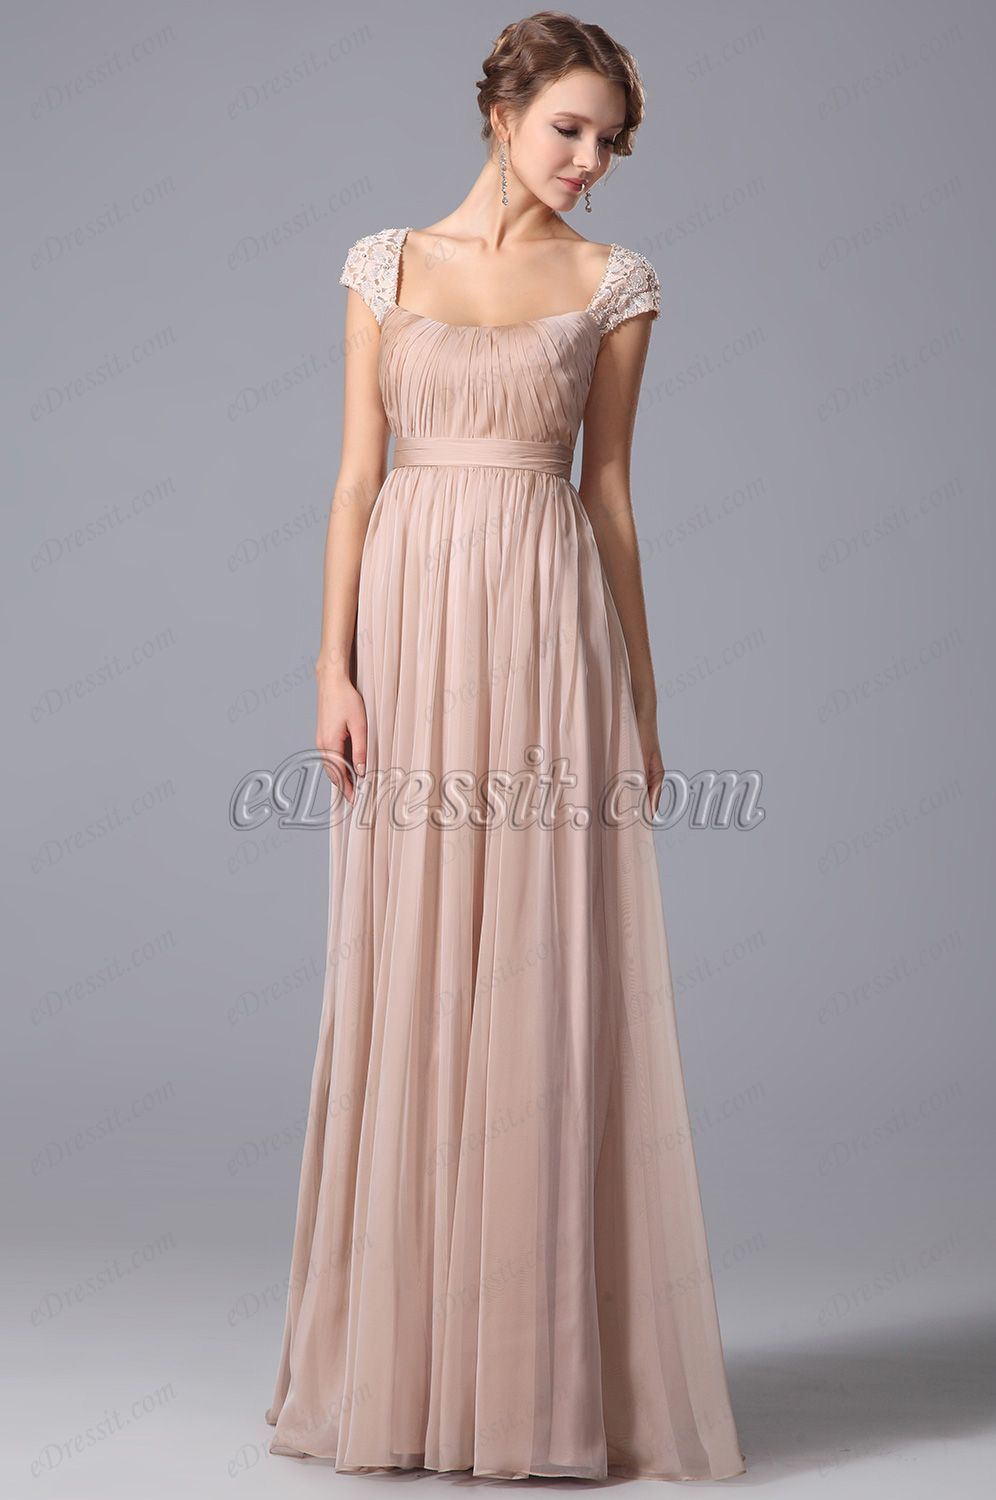 USD 79.99] A Line Evening Dress With Lace Cap Sleeves (00152946 ...